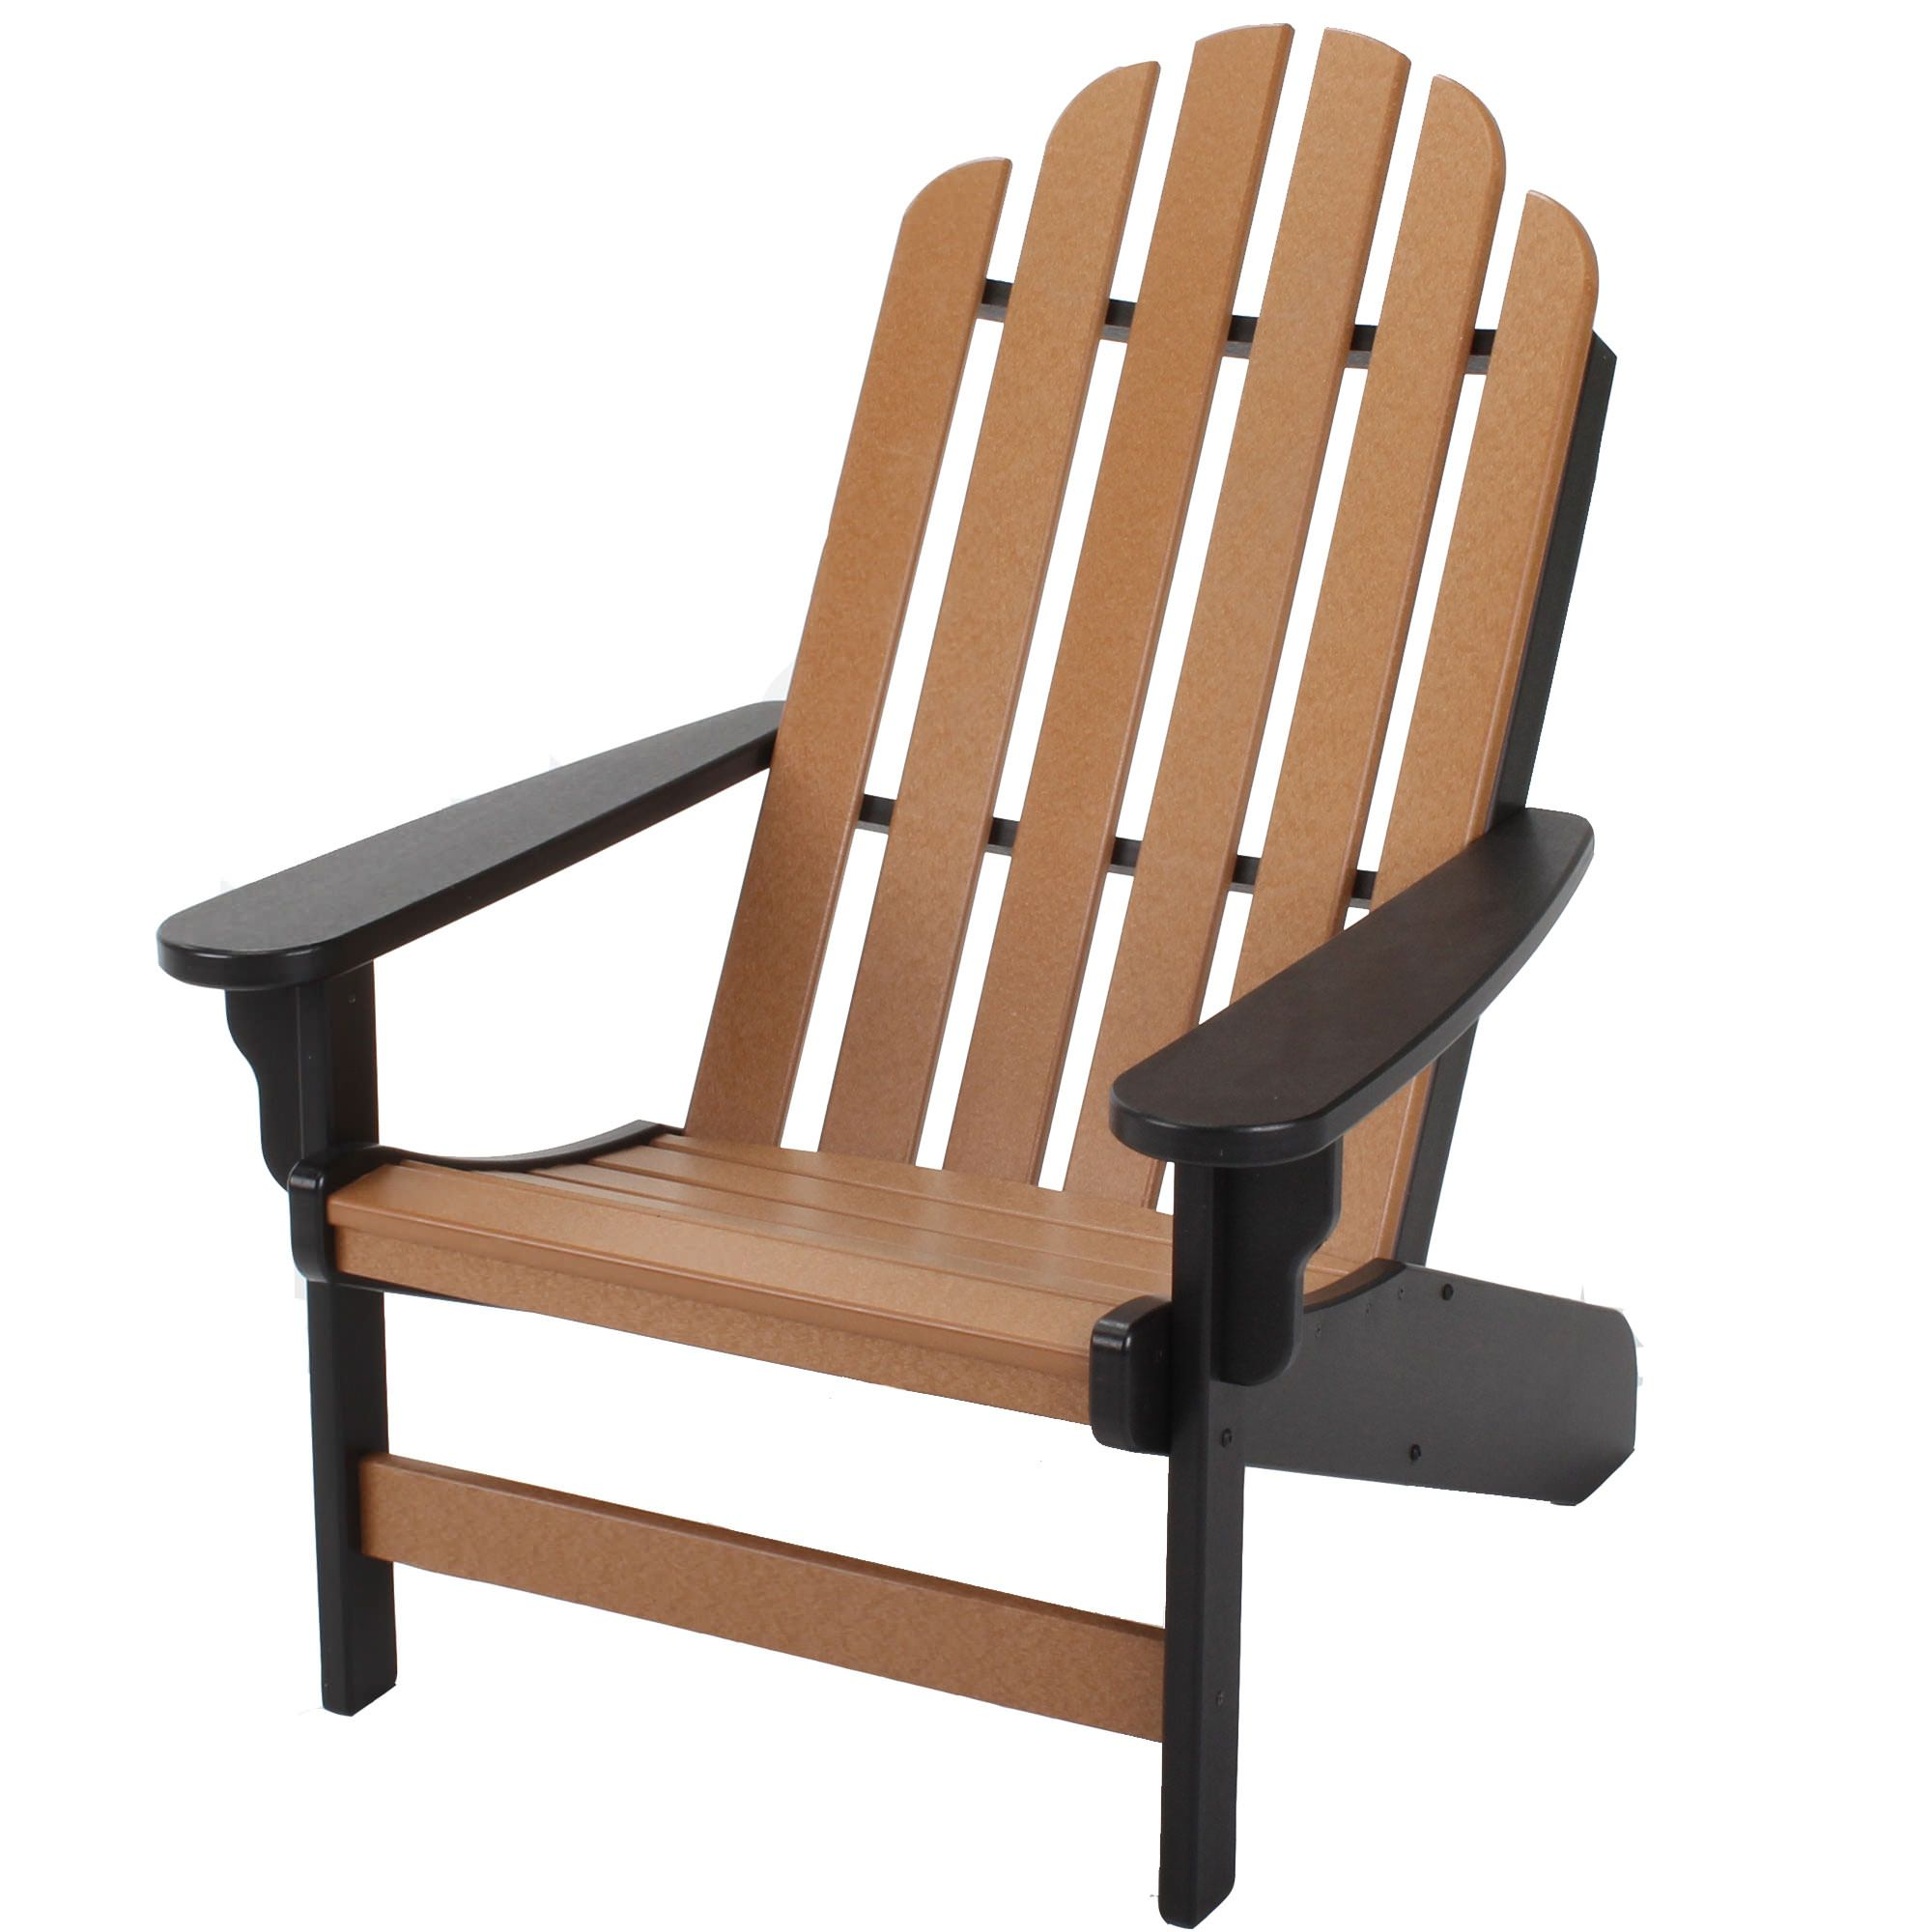 shop durawood essentials adirondack chairs on sale. Black Bedroom Furniture Sets. Home Design Ideas